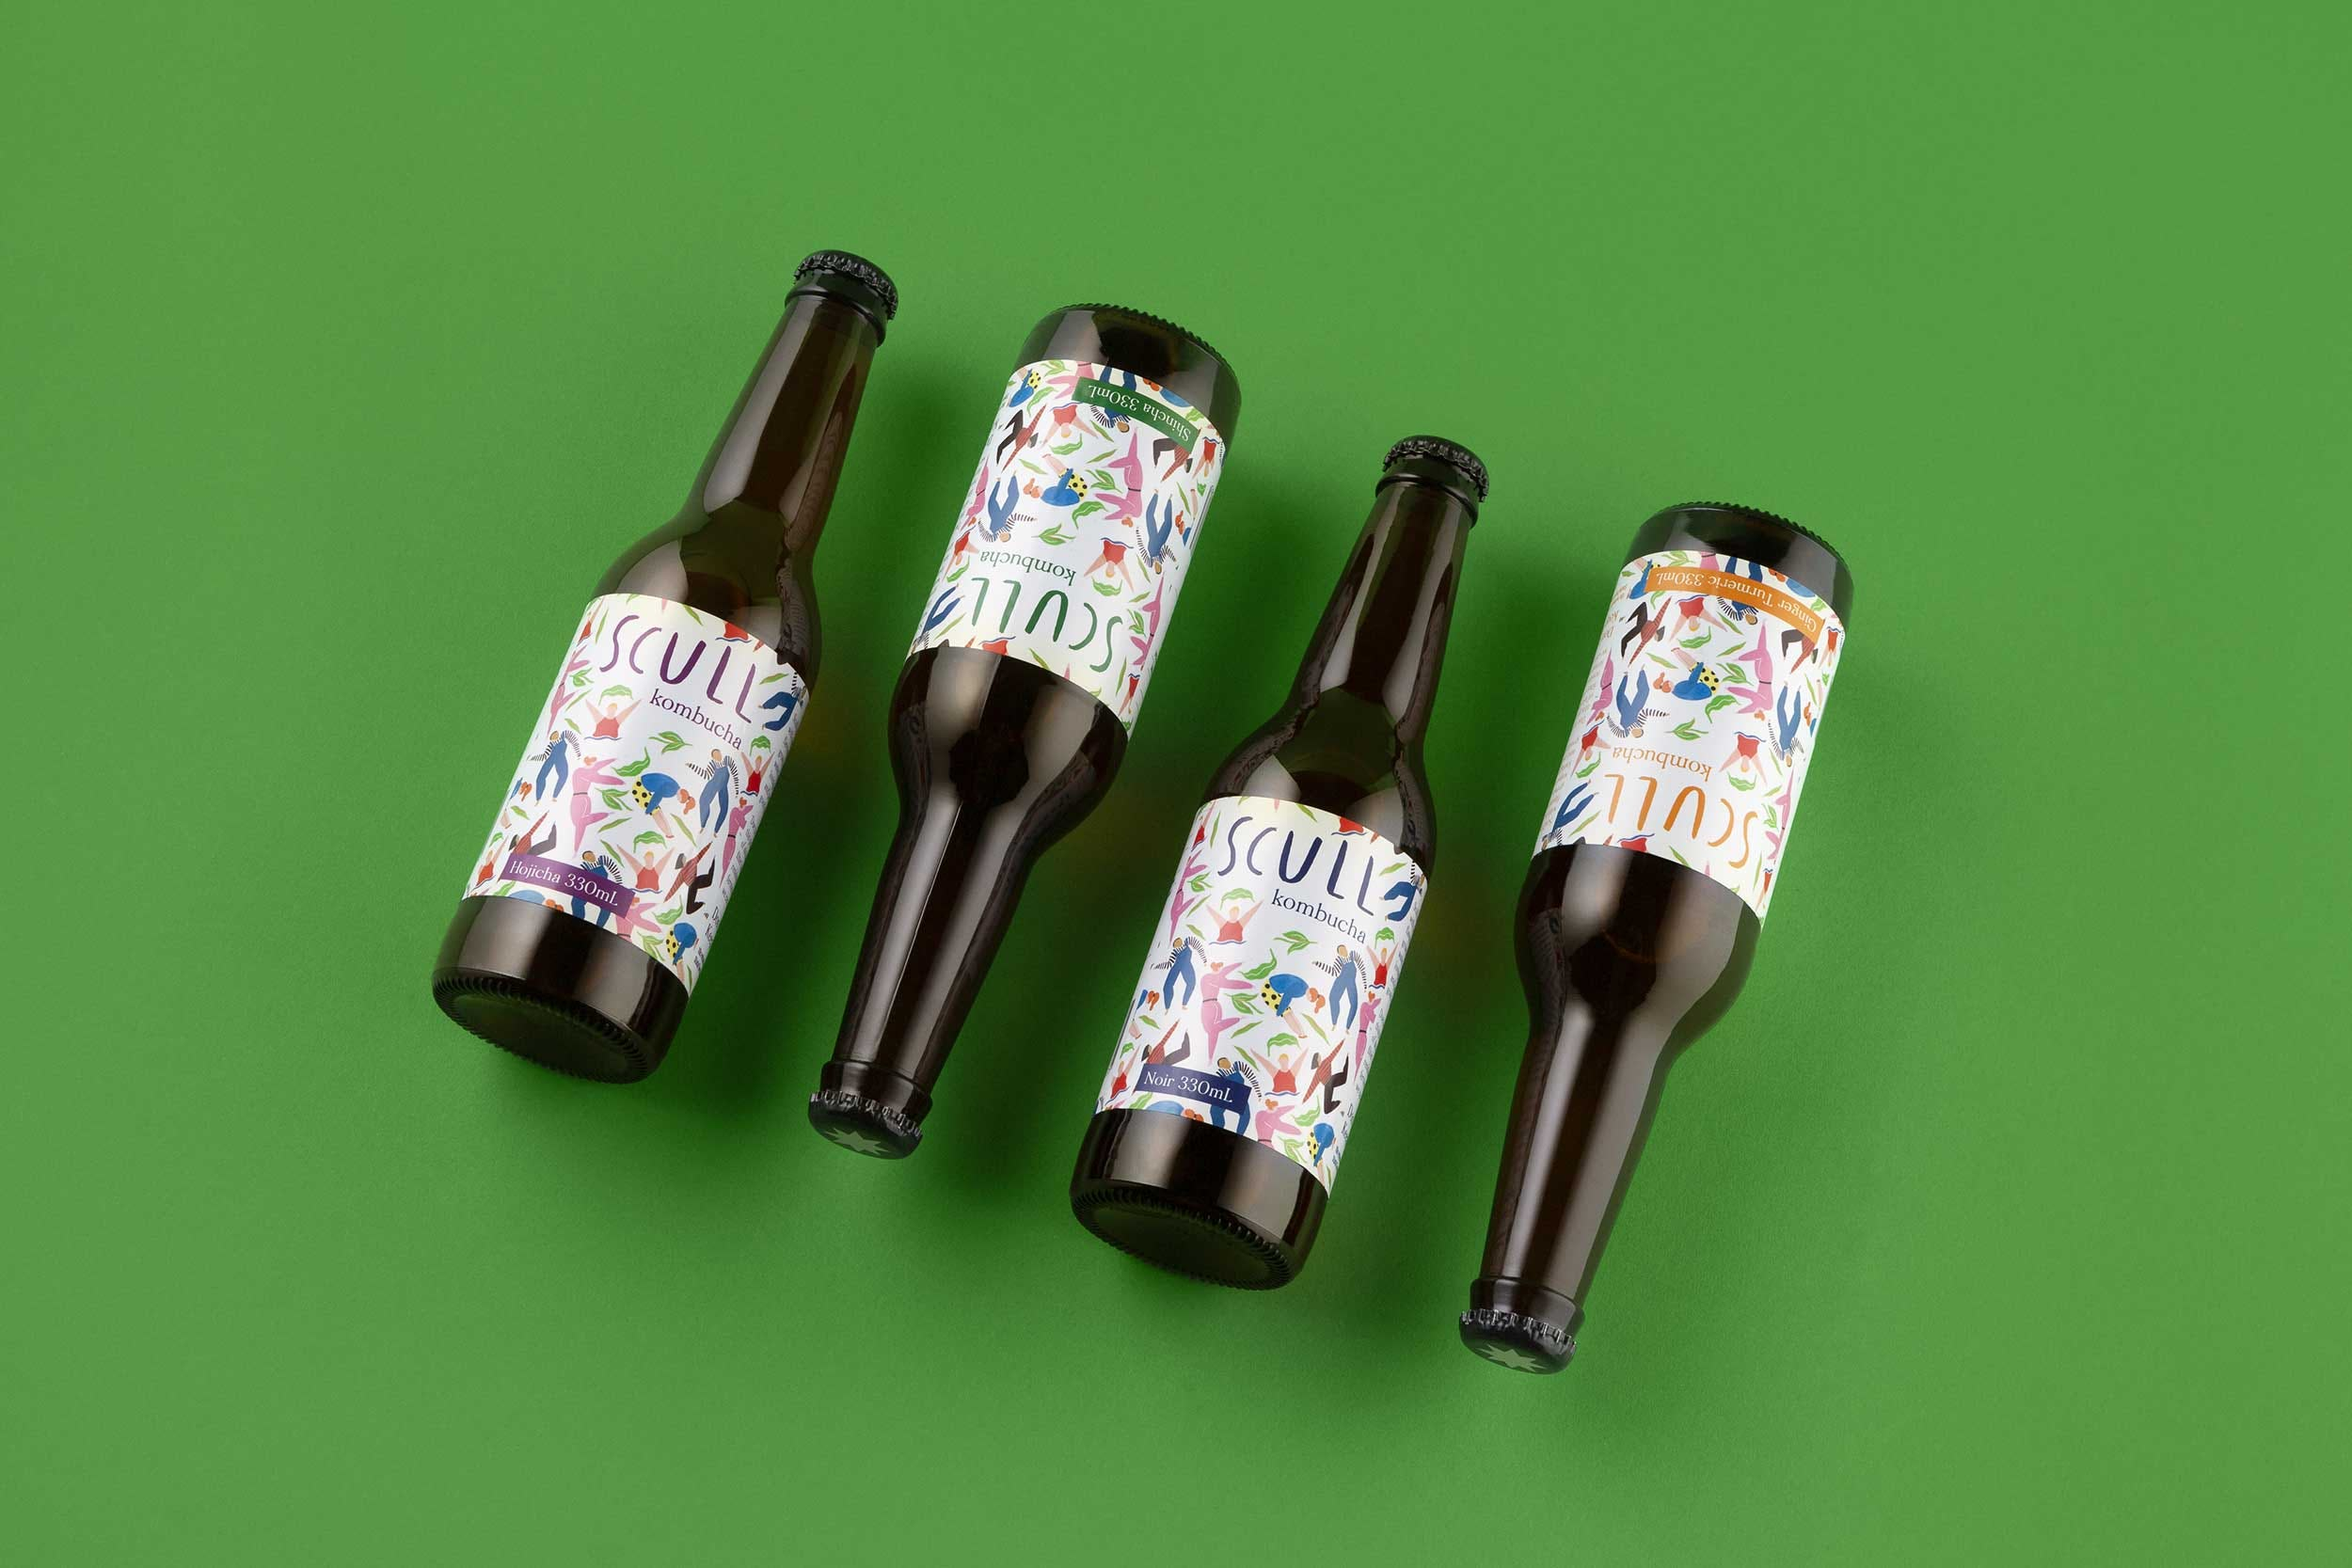 Product shot of Scull bottles